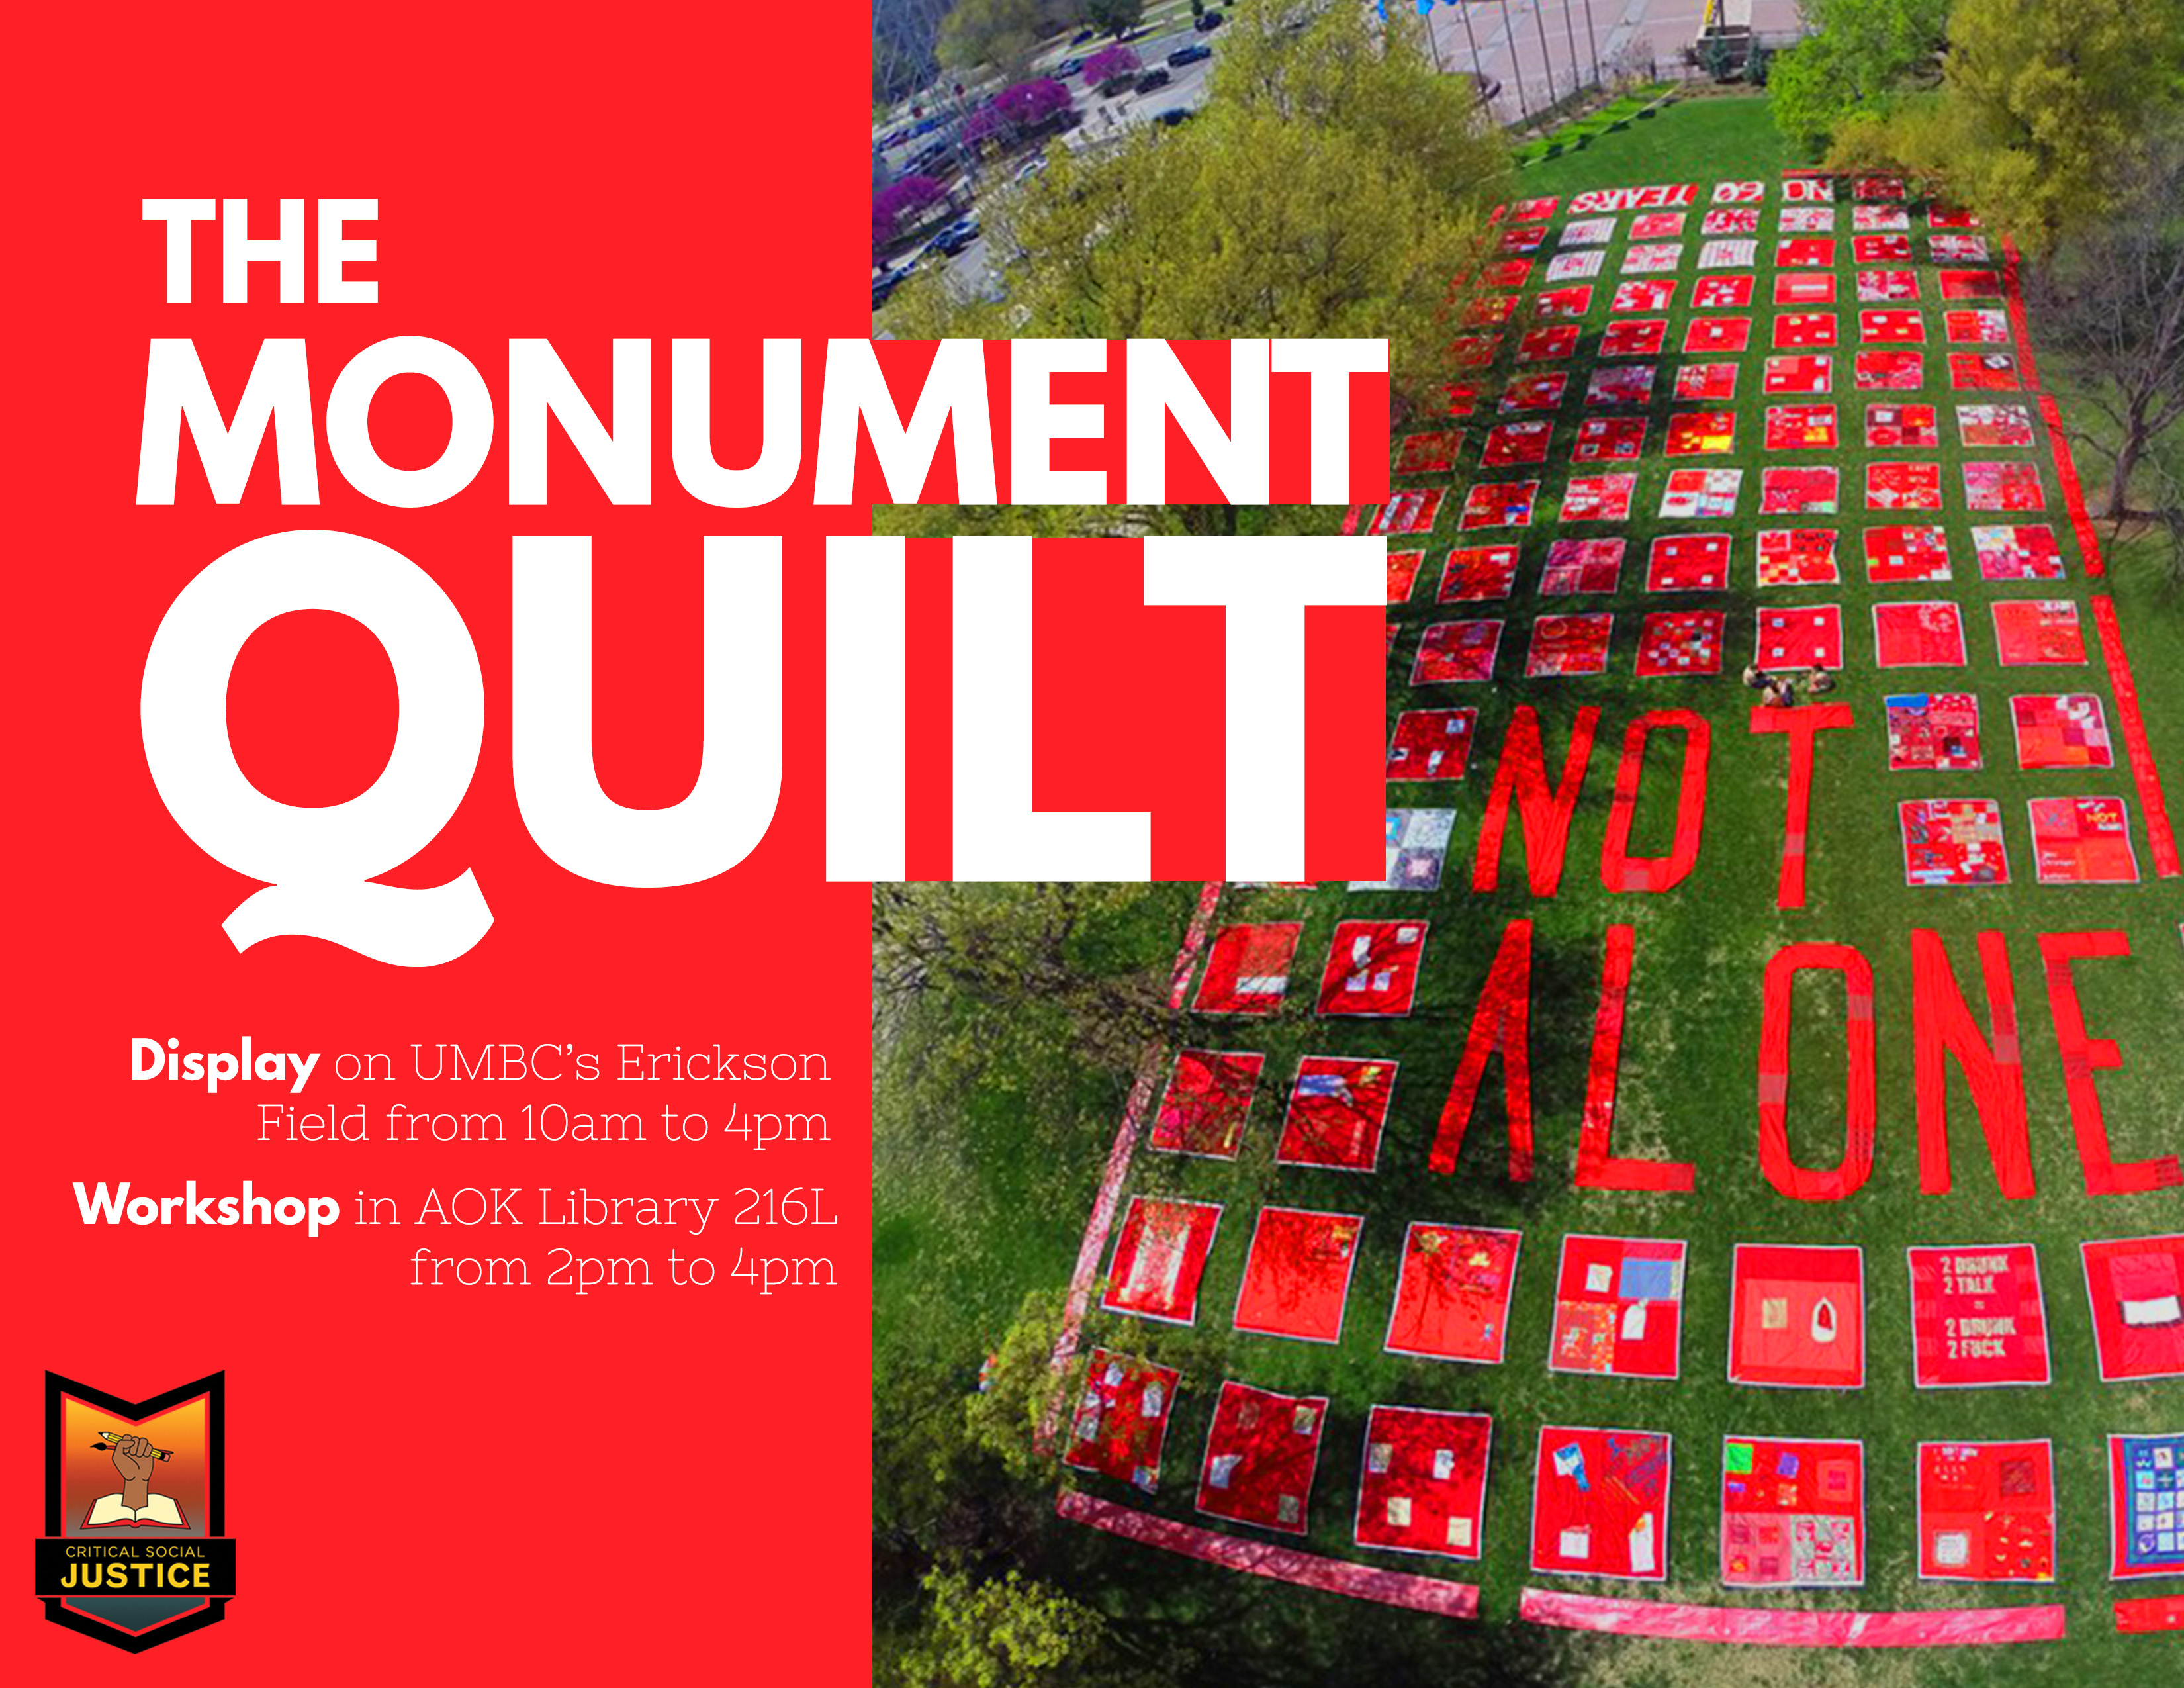 The Monument Quilt Display